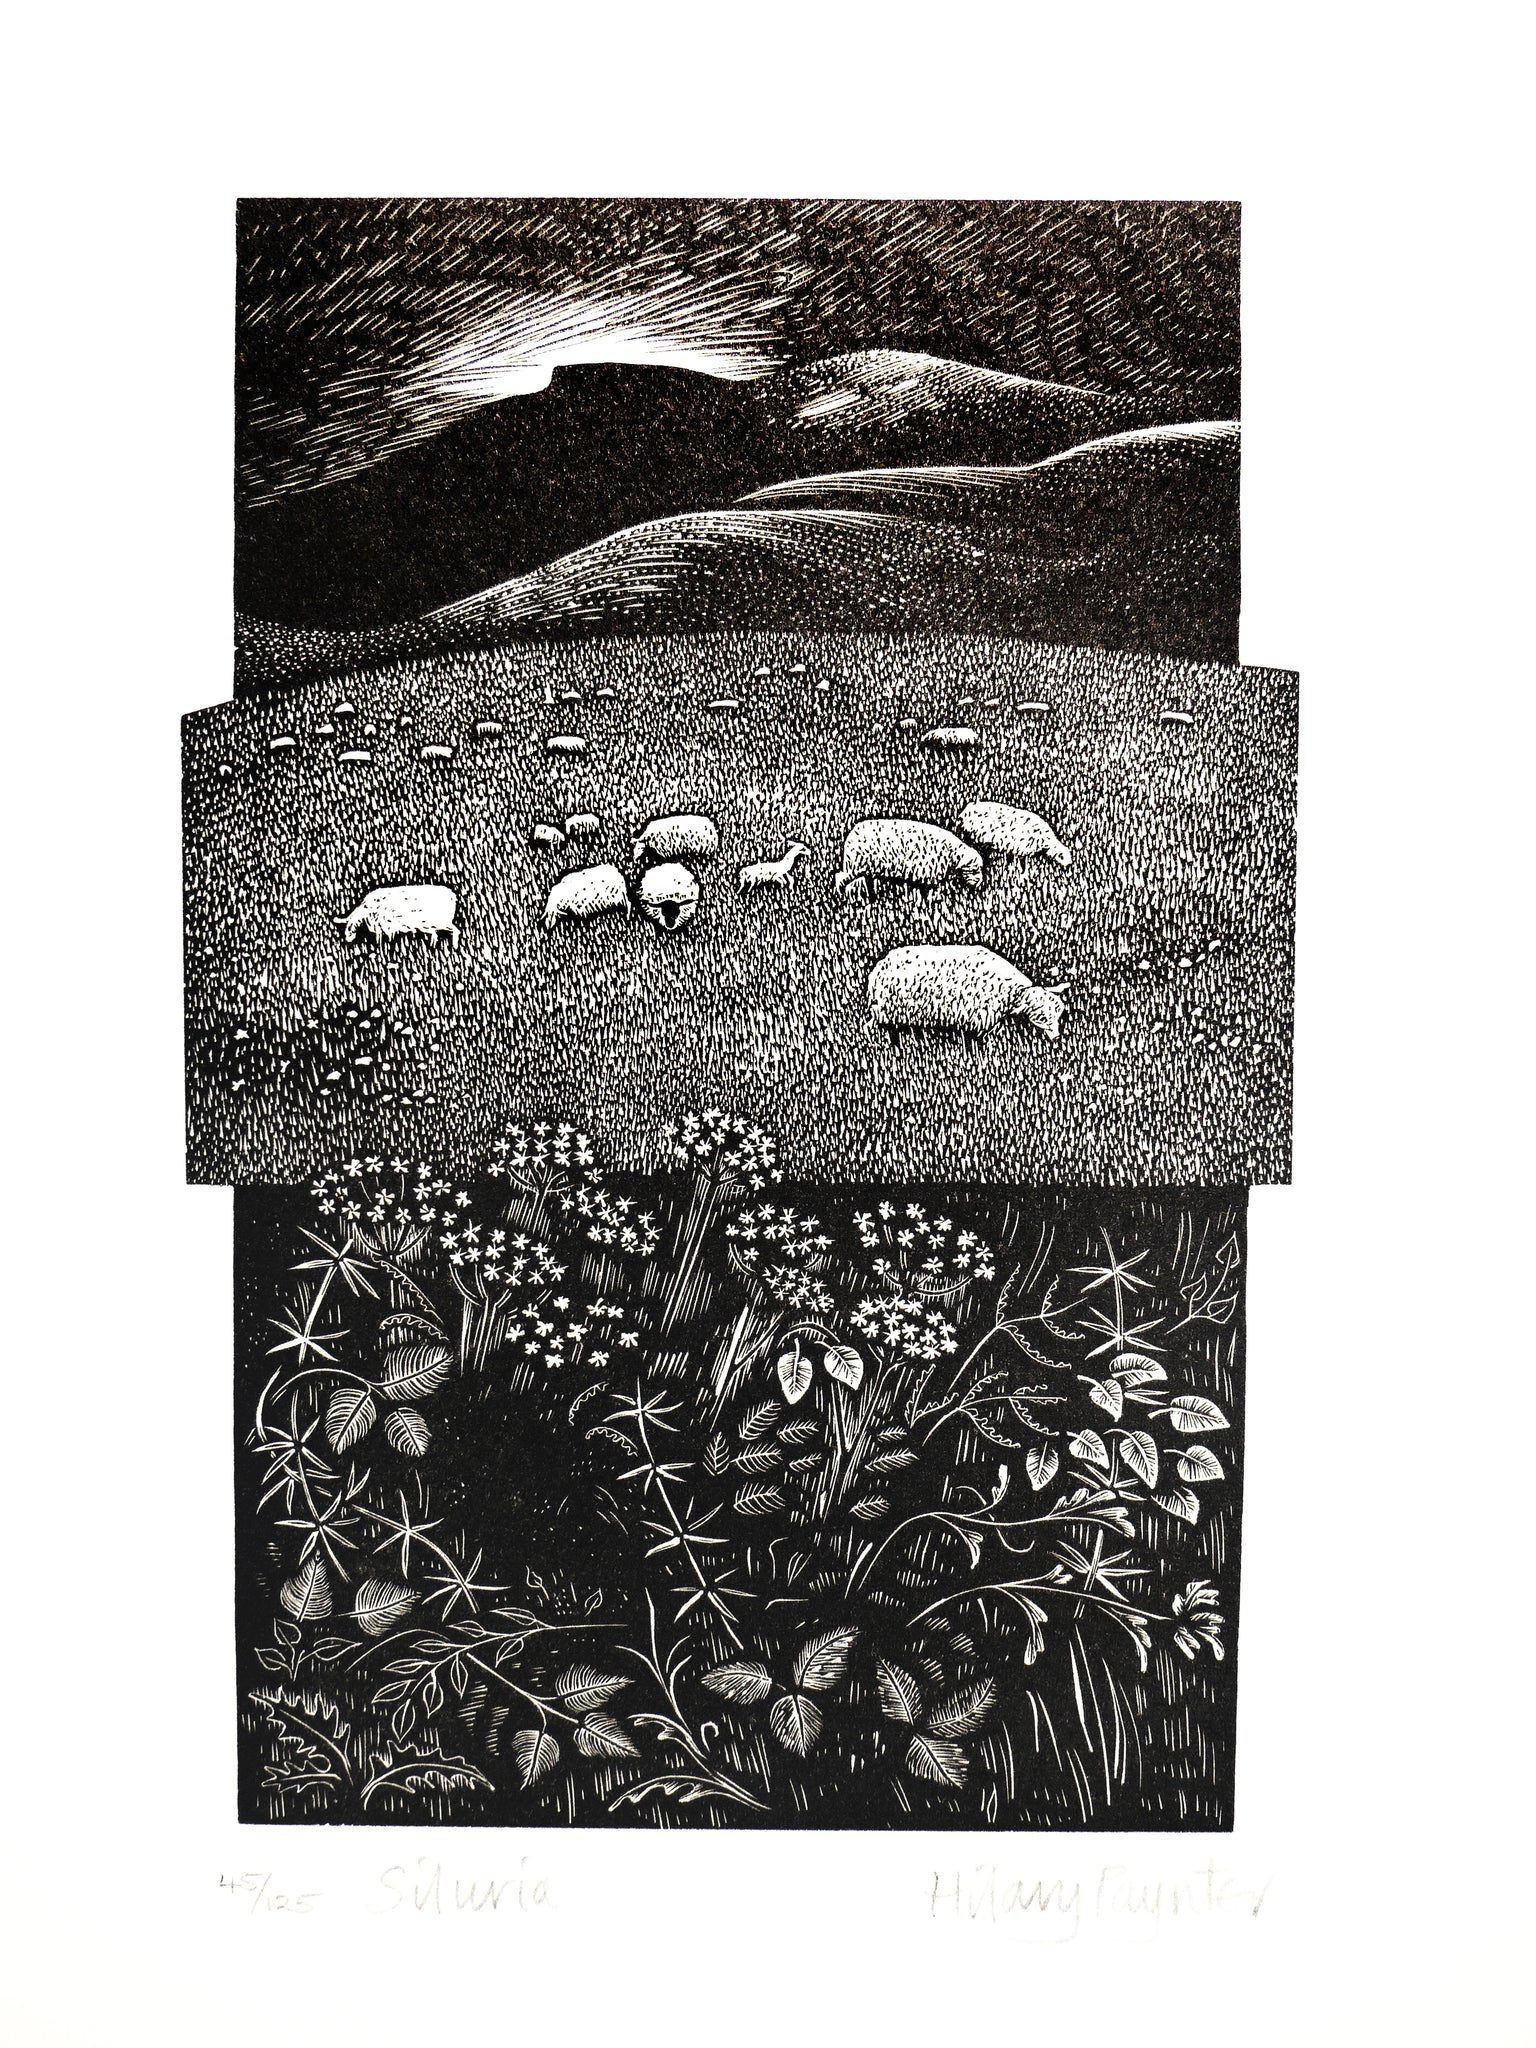 Hilary Paynter Wood Engraving: Siluria